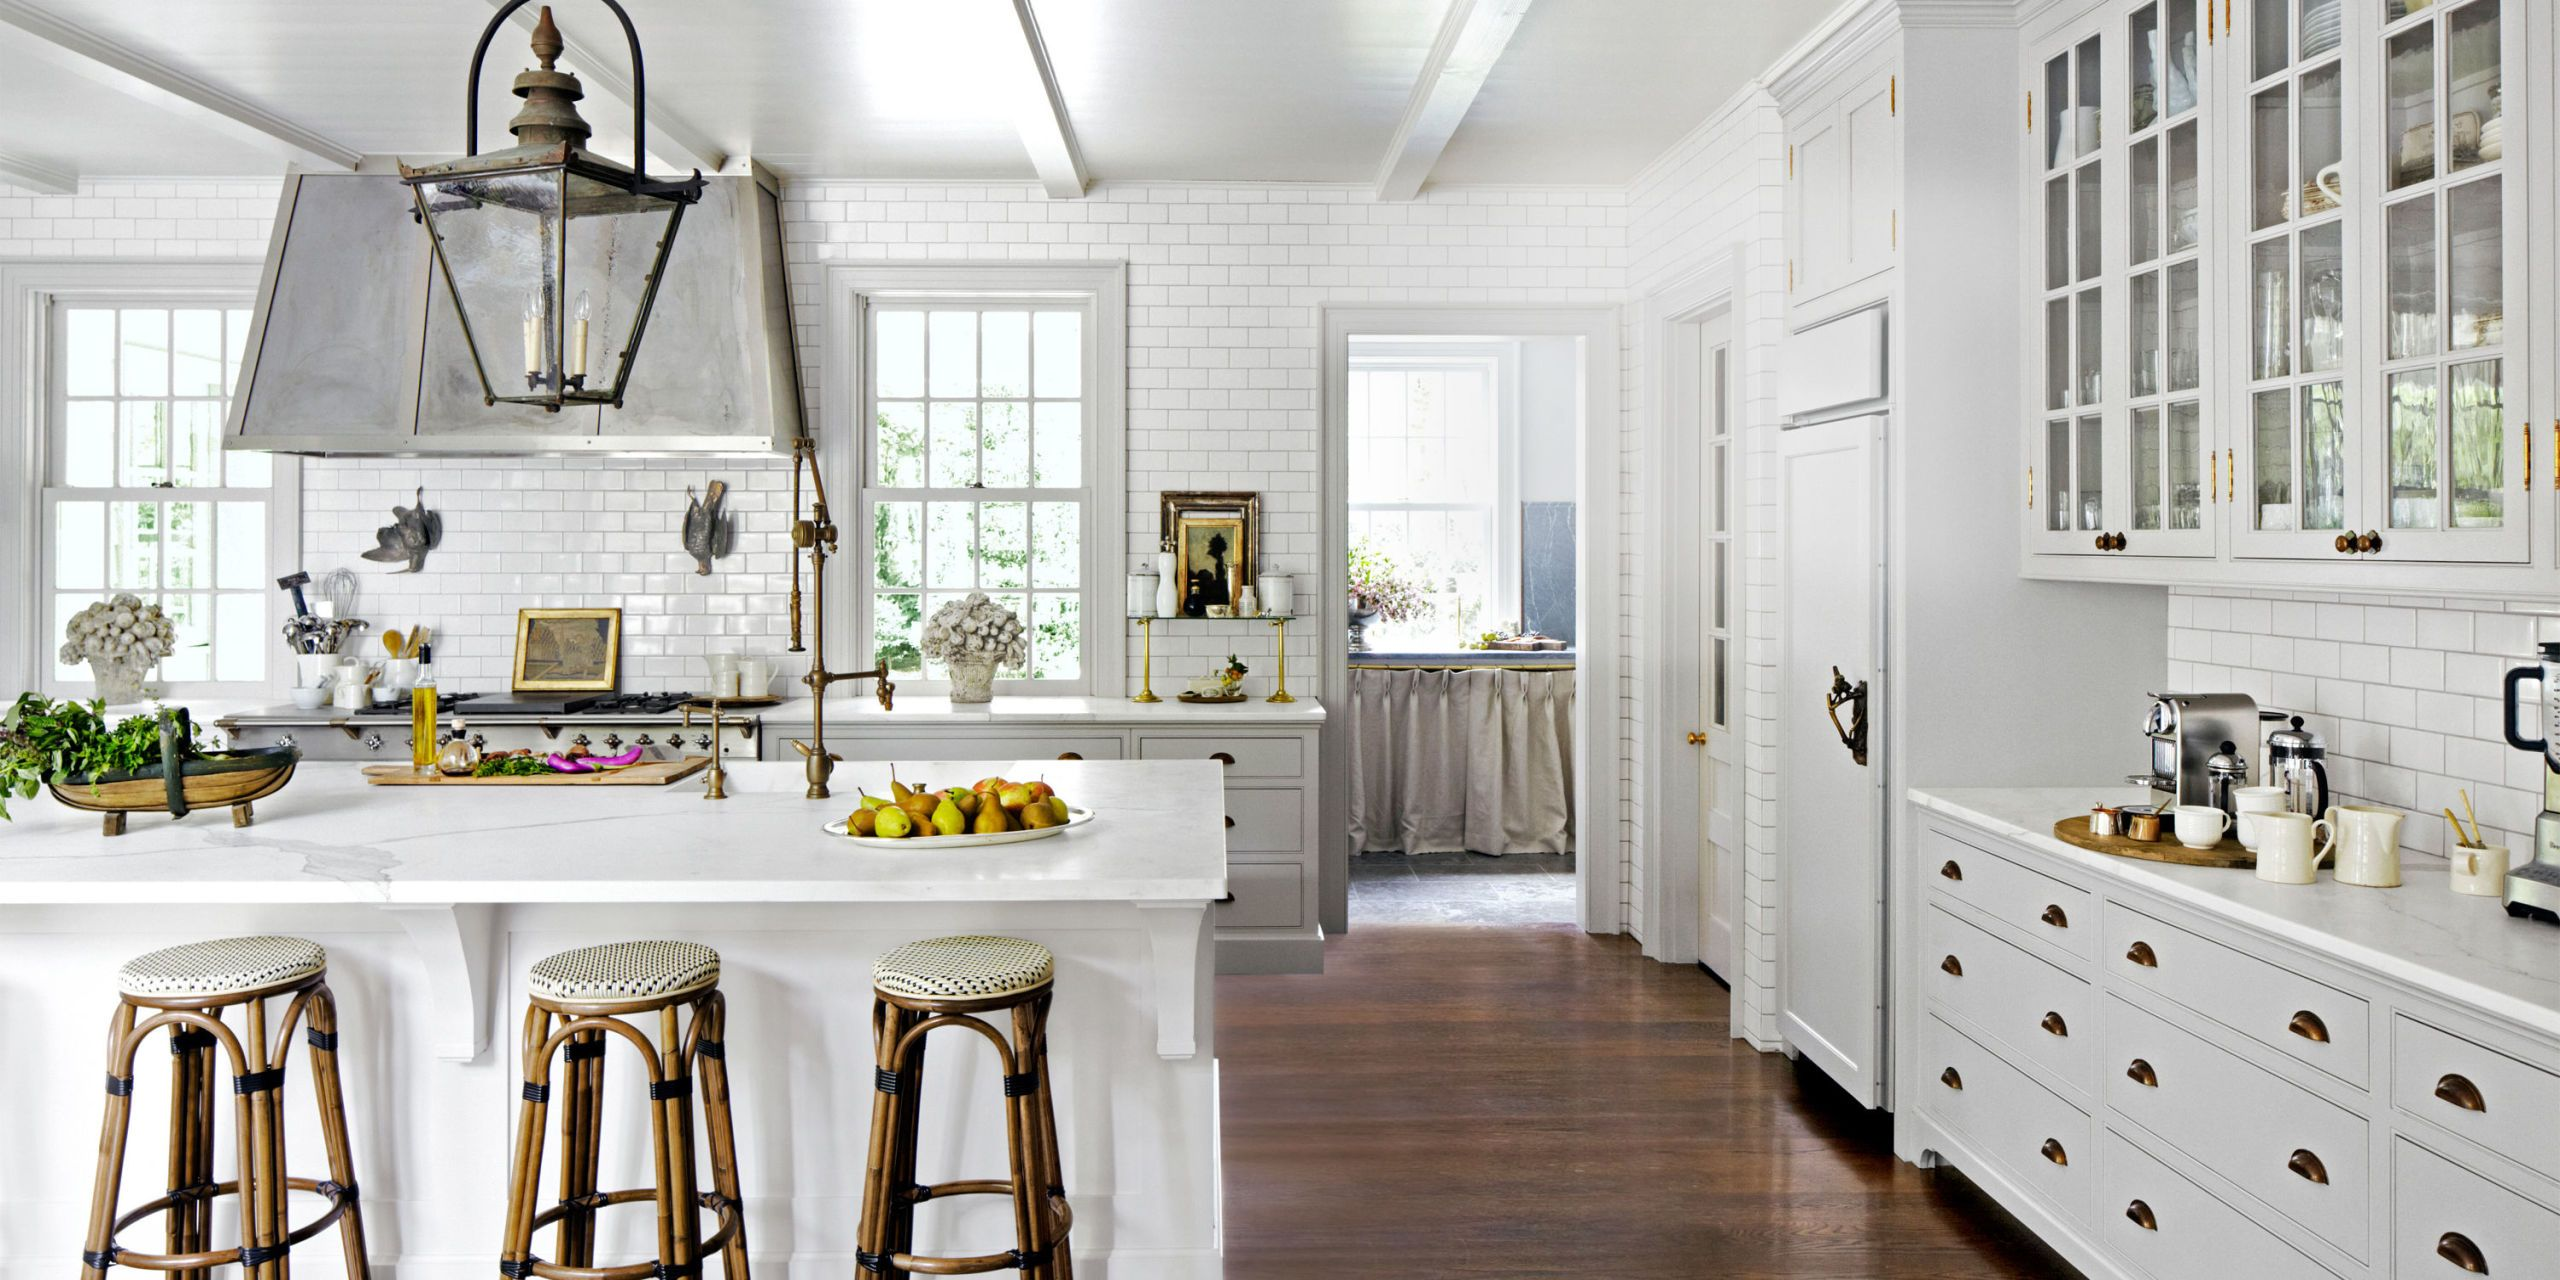 Delicieux Amazing Ideas For Using White To Spruce Up Your Kitchen Decor And Take It  From Drab To Dazzling.